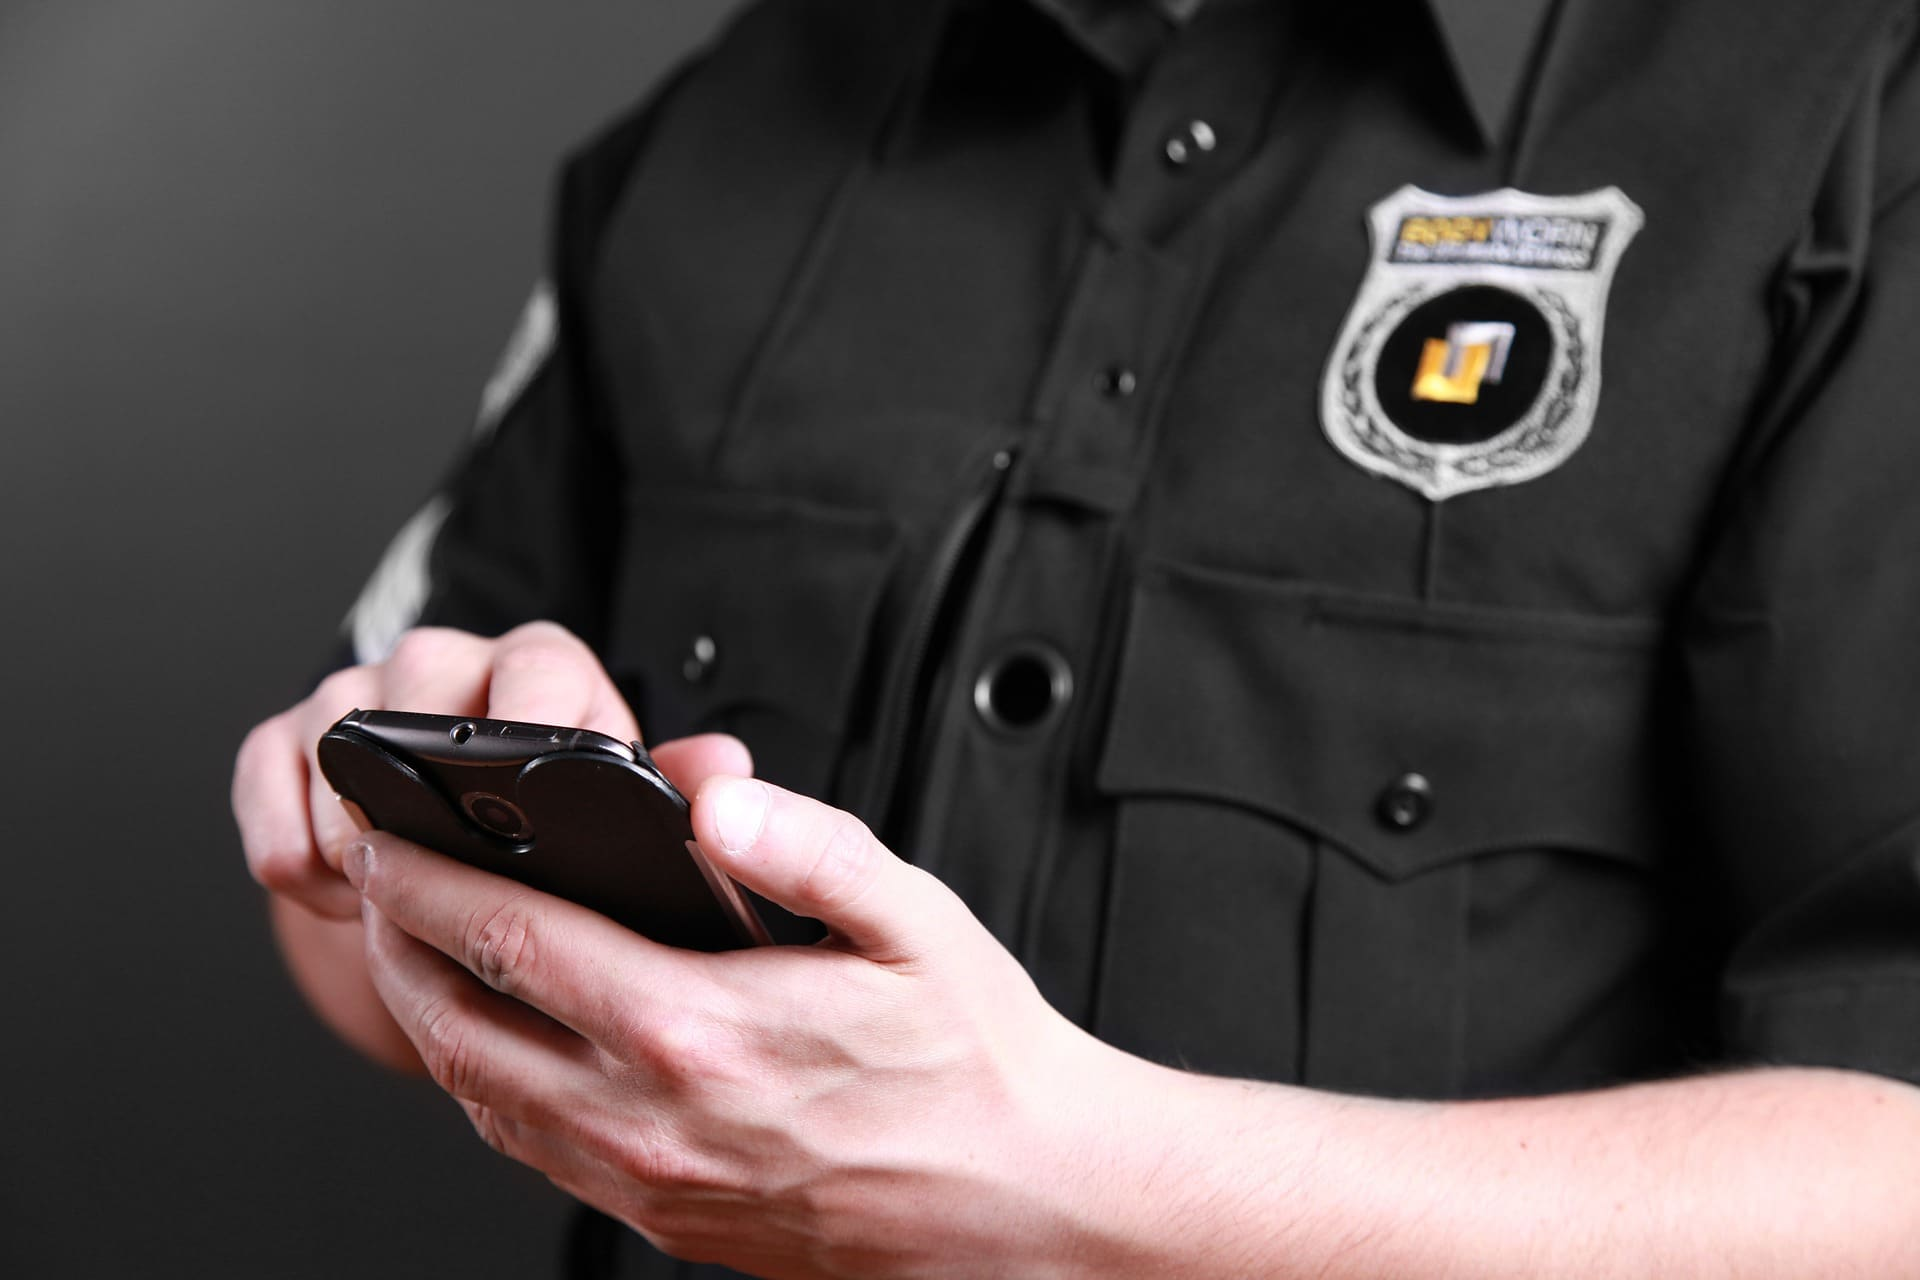 can police search my phone without a warrant